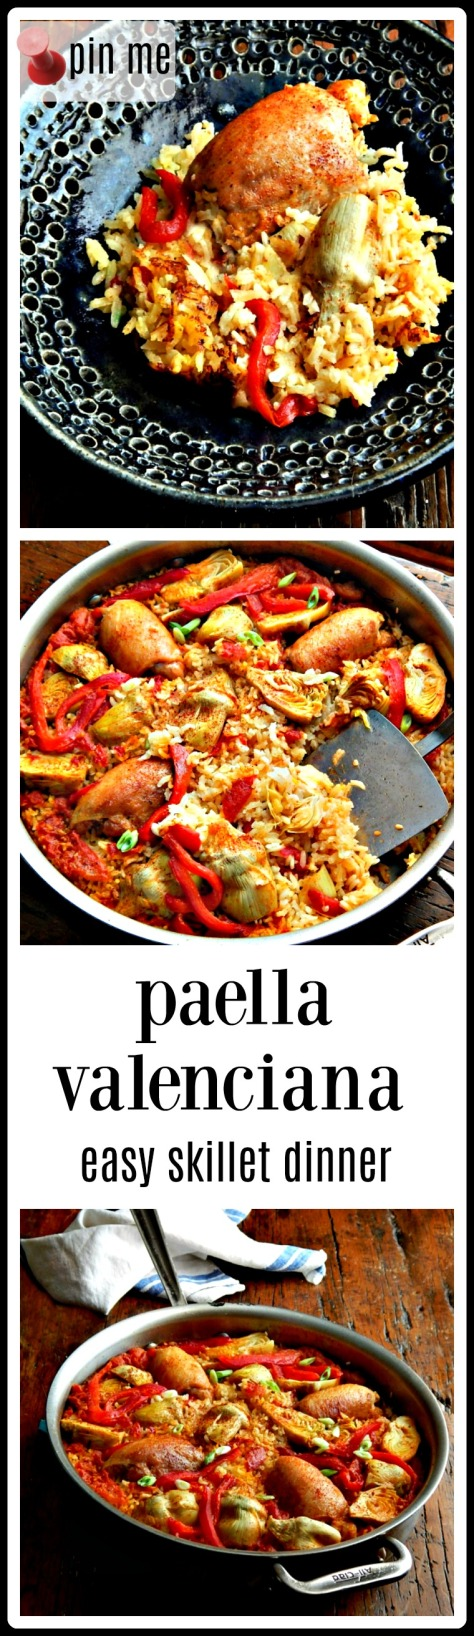 Paella Valenciana - it's really just a simple skillet dinner. This one is made with chicken.